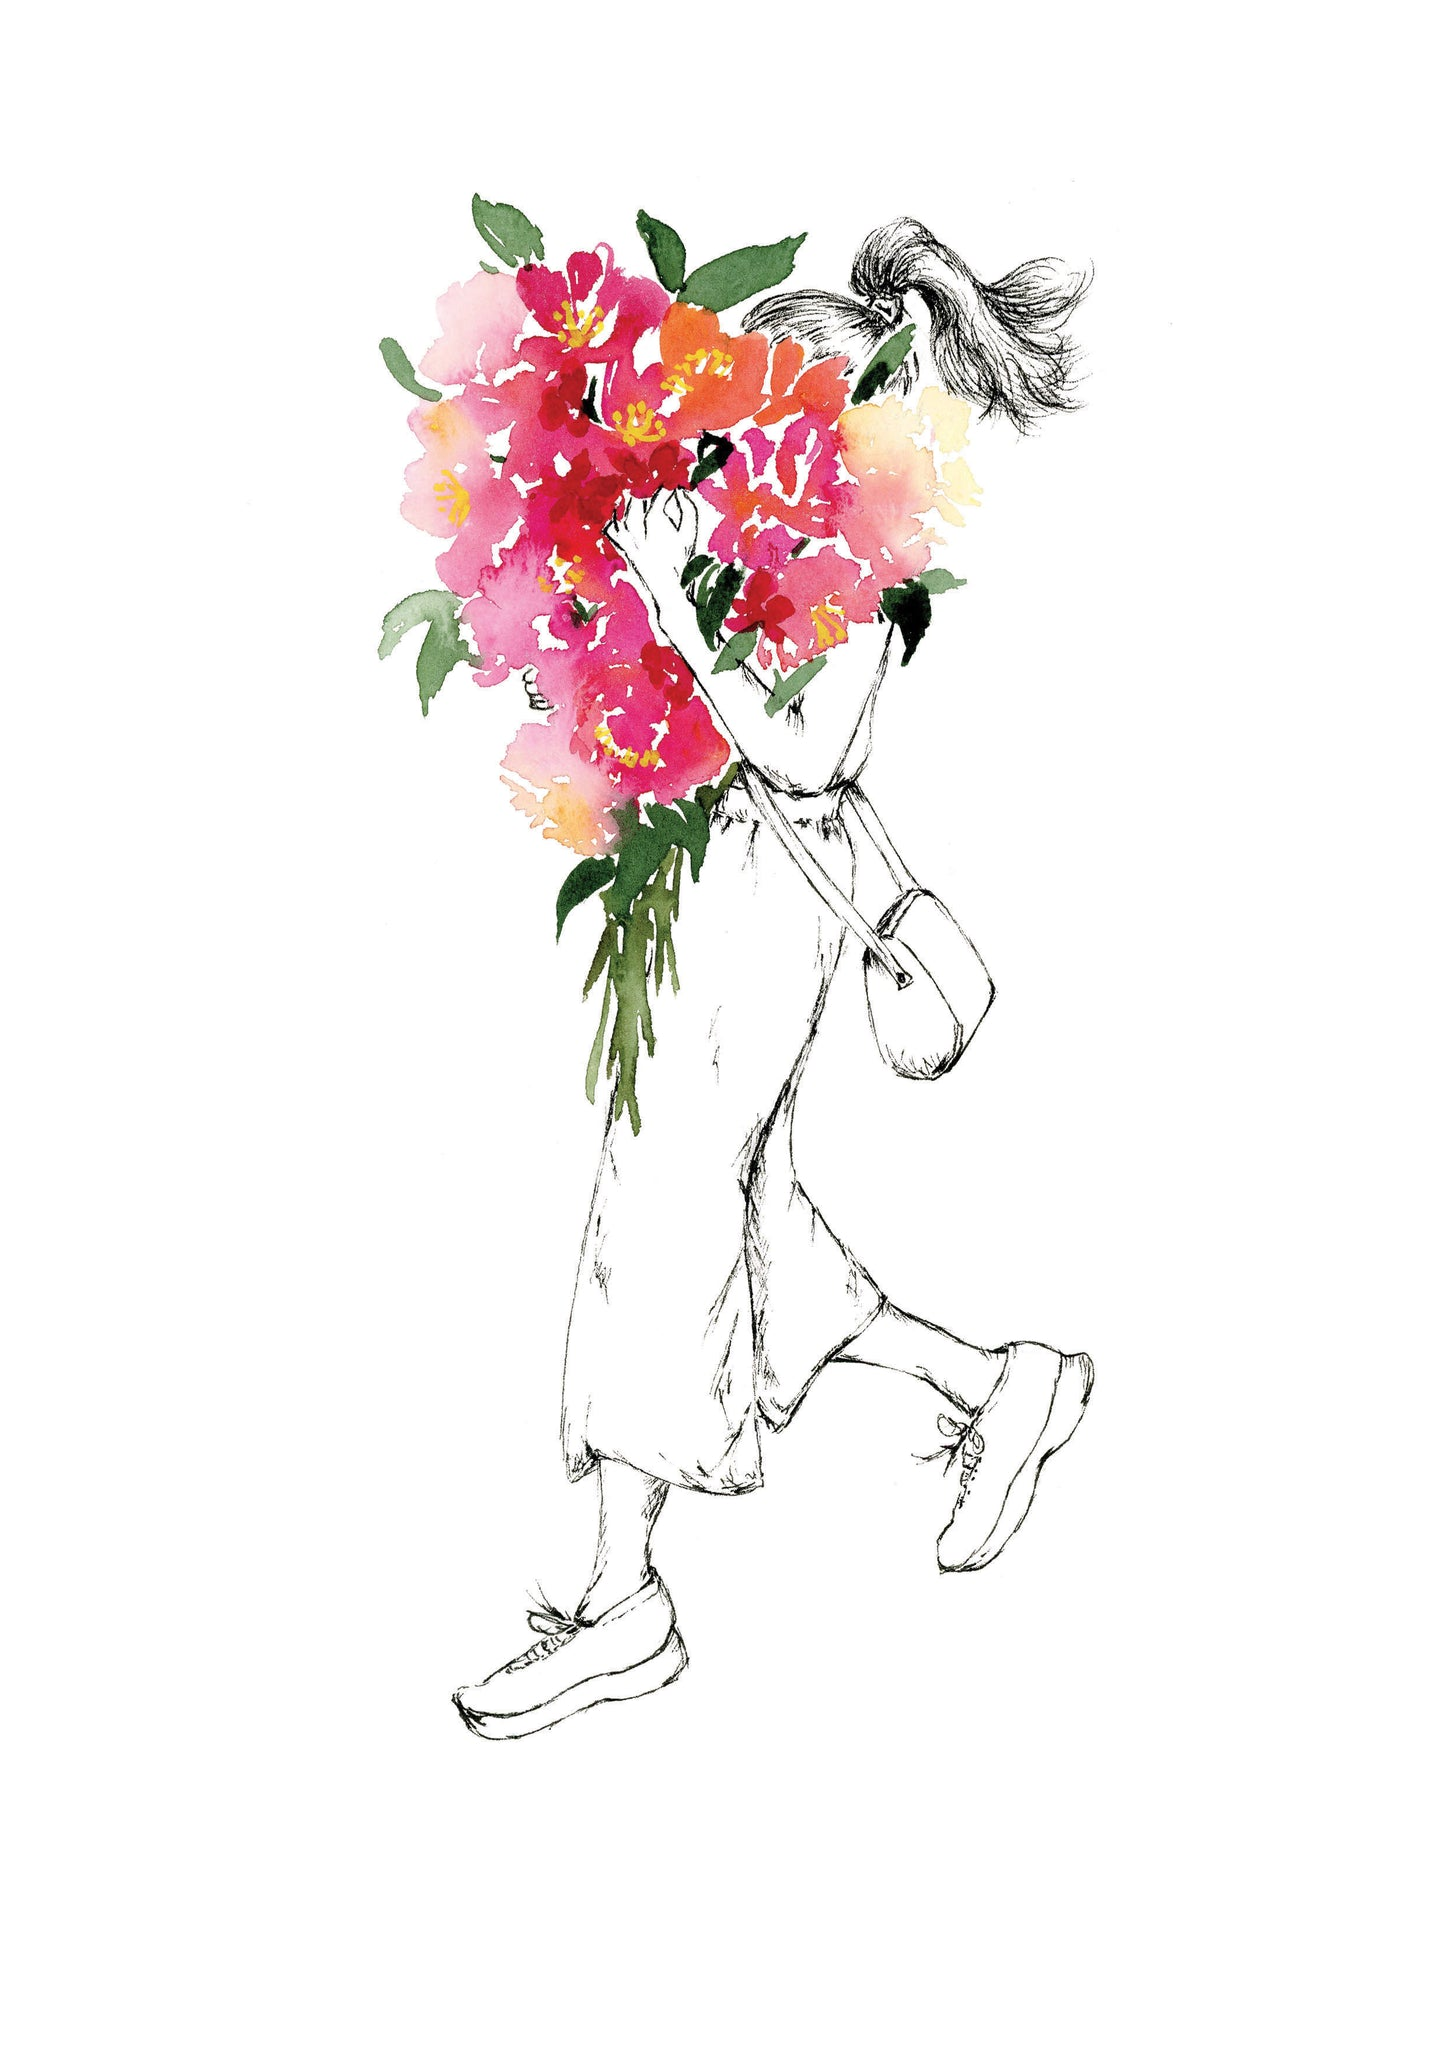 Watercolour art print of a woman holding a red floral bouquet, by For My Dearest